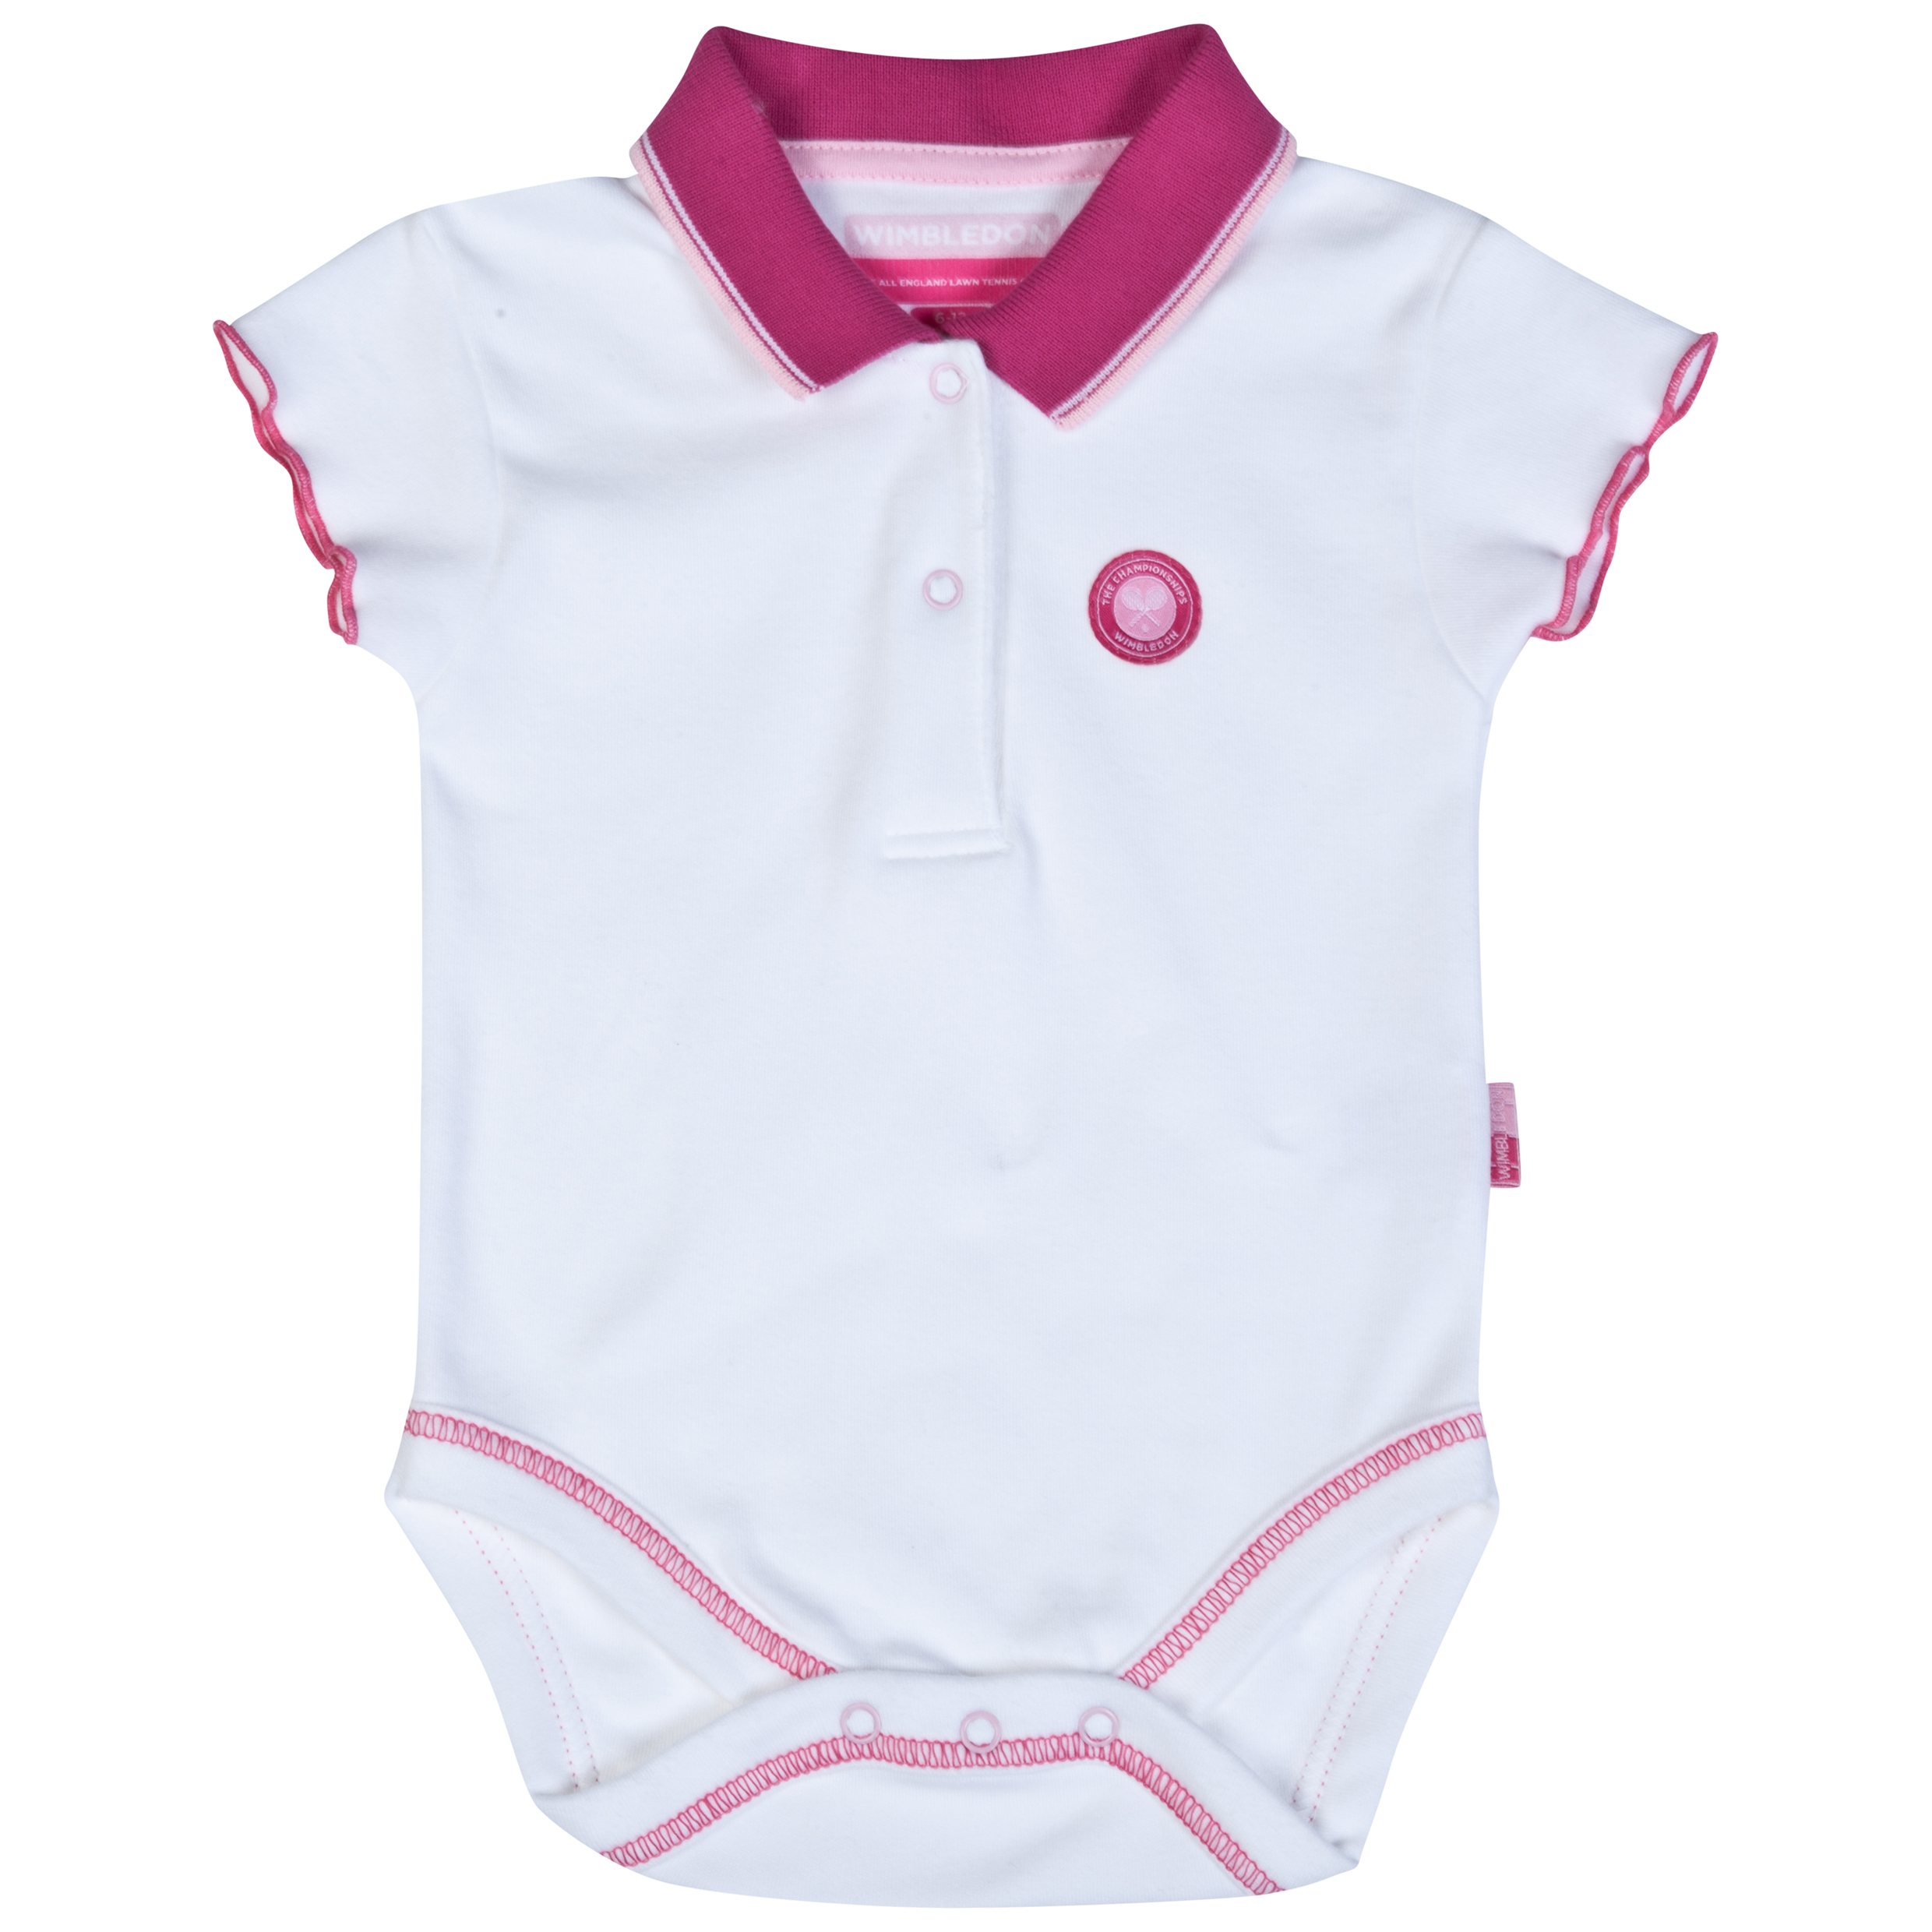 Wimbledon Baby Polo Shirt - Infants White